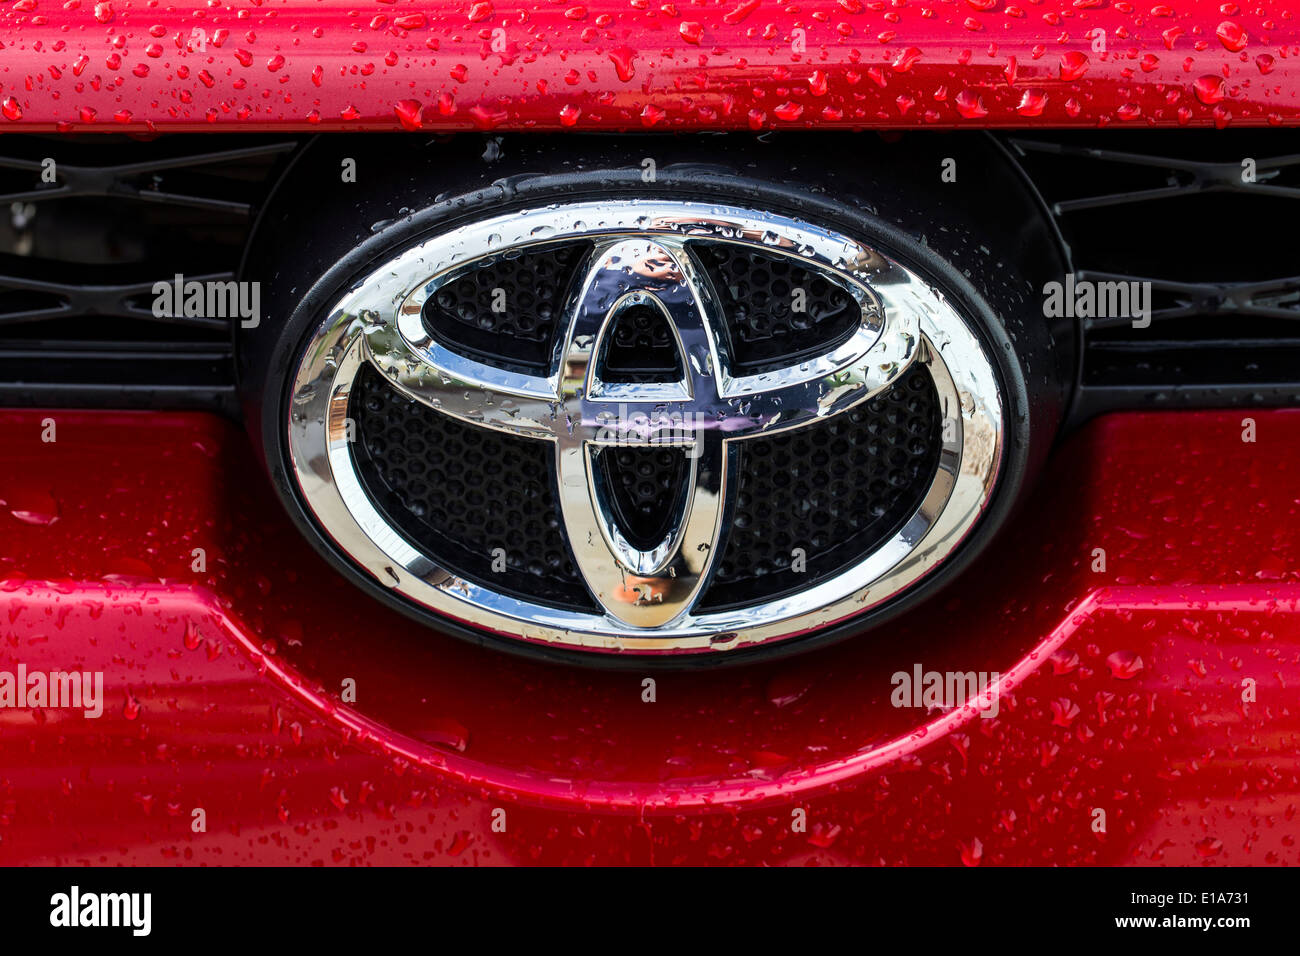 Beads of rain water droplets on red Toyota 4Runner truck and logo - Stock Image